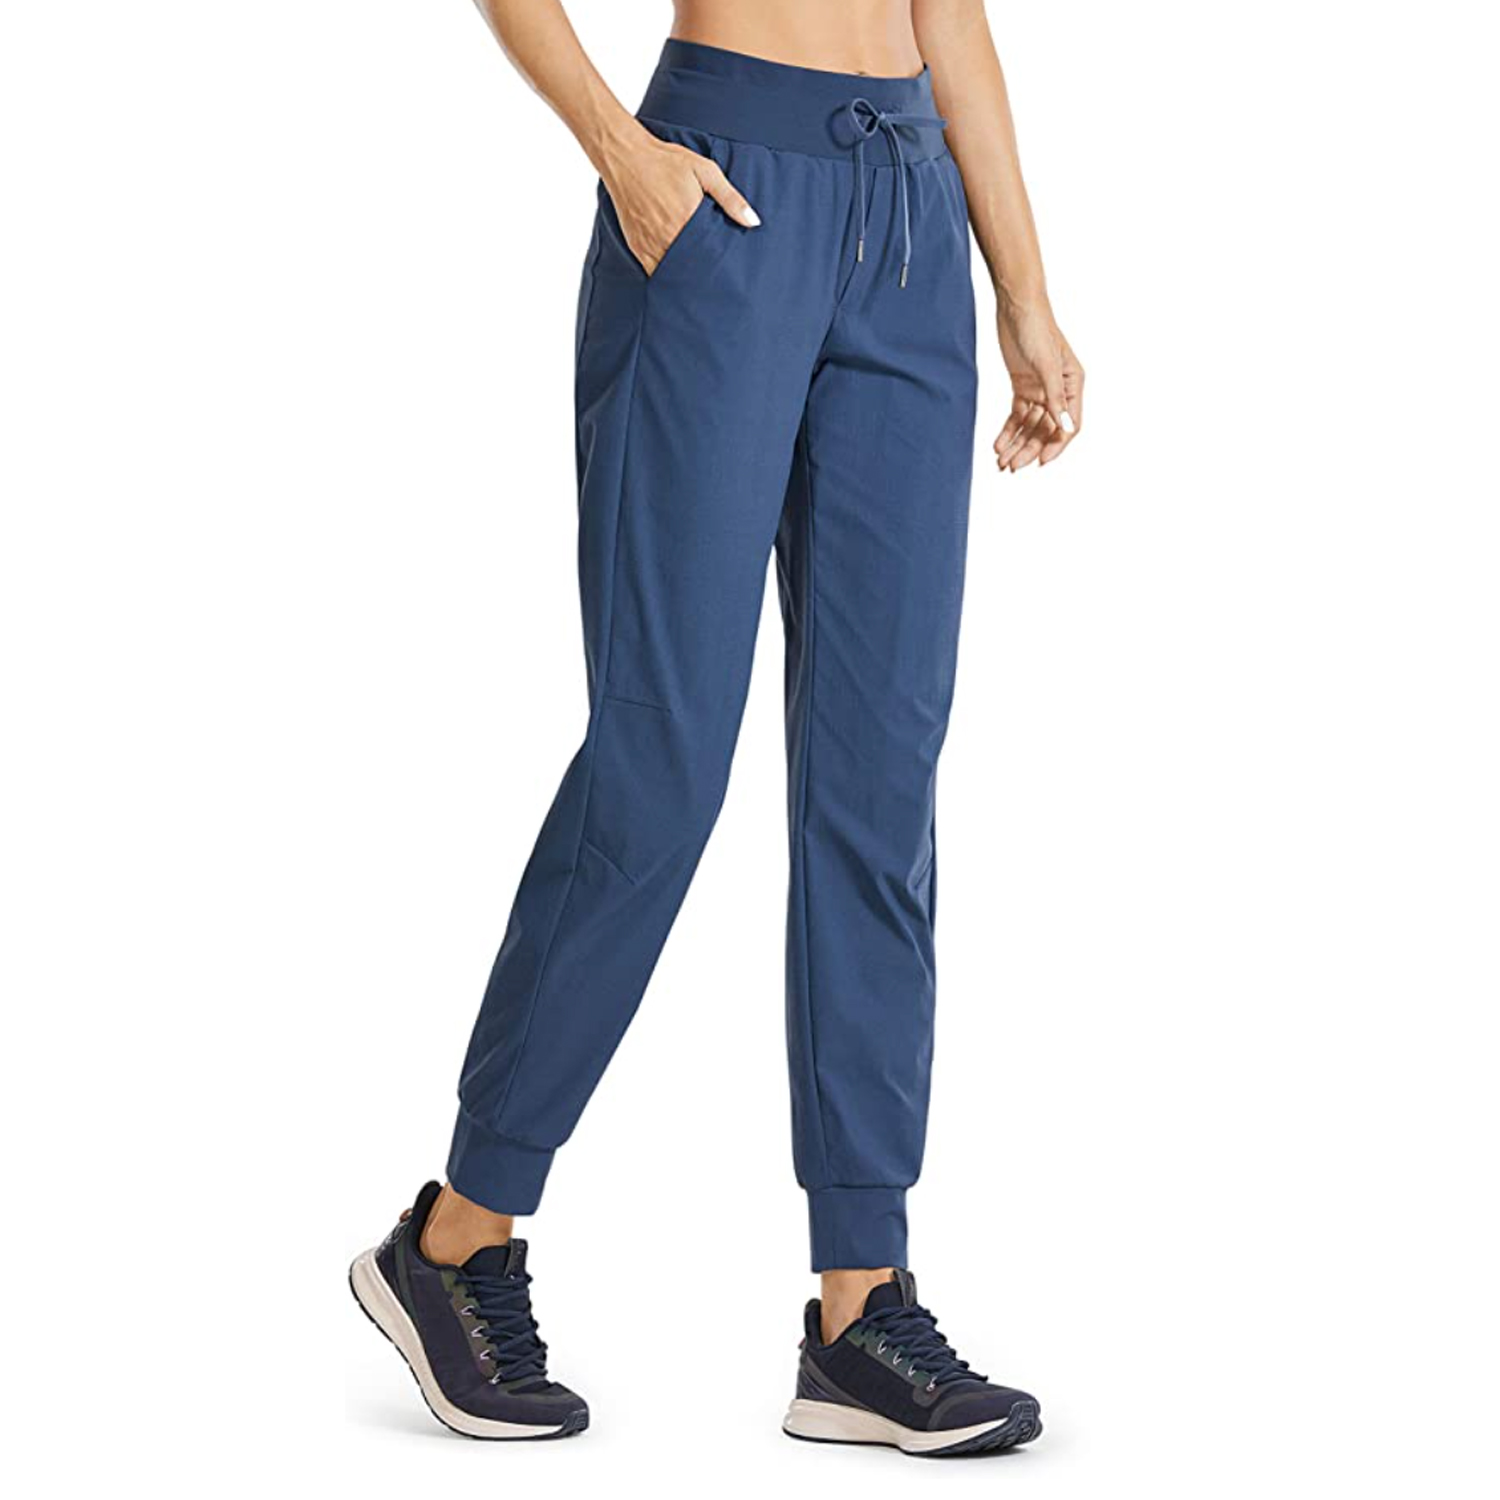 woman wearing navy blue hiking pants and navy tennis shoes